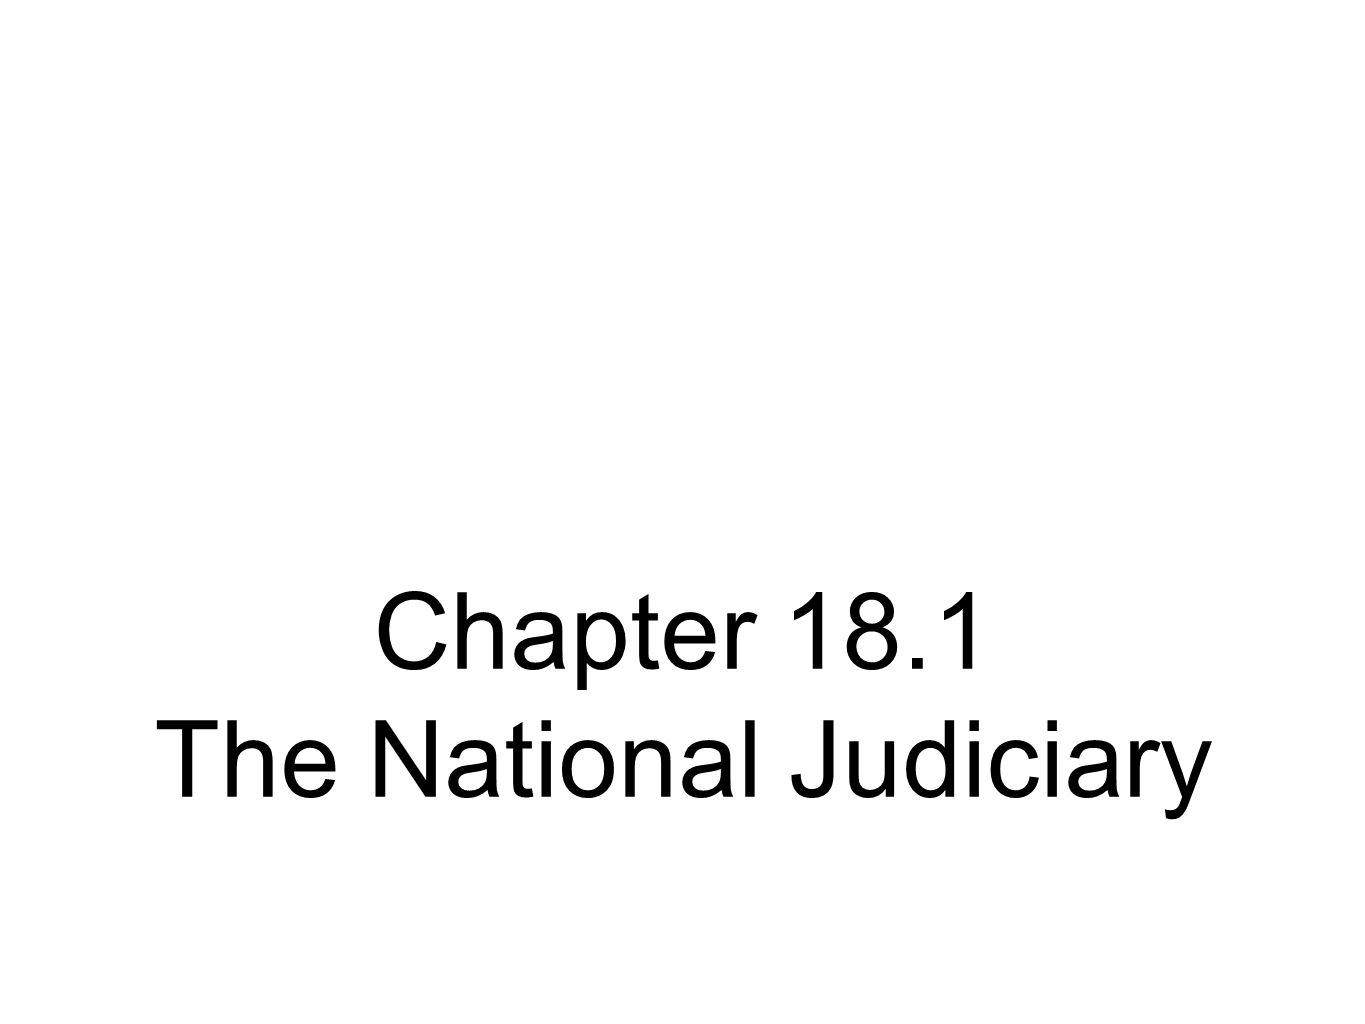 Chapter 18.1 The National Judiciary